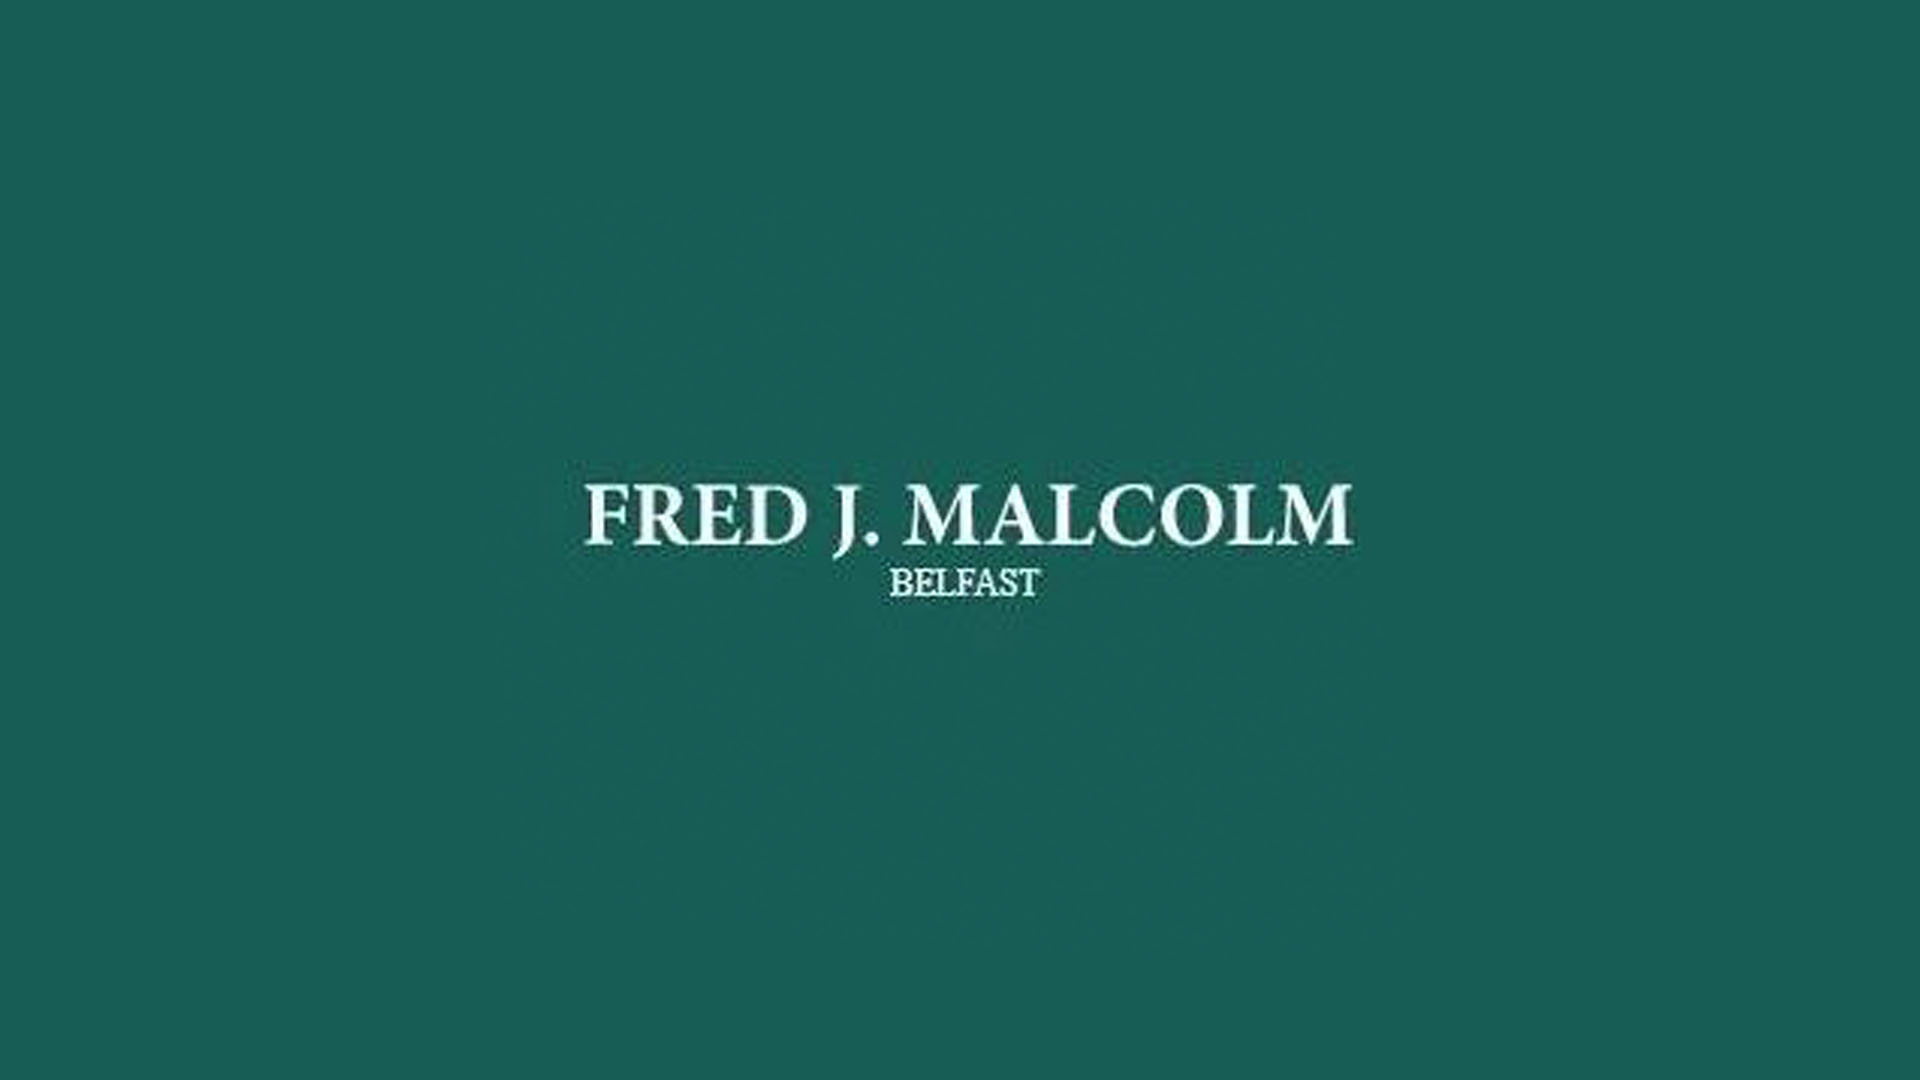 Established in 1926 Fred J. Malcolm has evolved to become the modern independent jeweller it is today. Primarily diamond merchants they have carefully chosen international designers who reflect their ethos of quality and style.